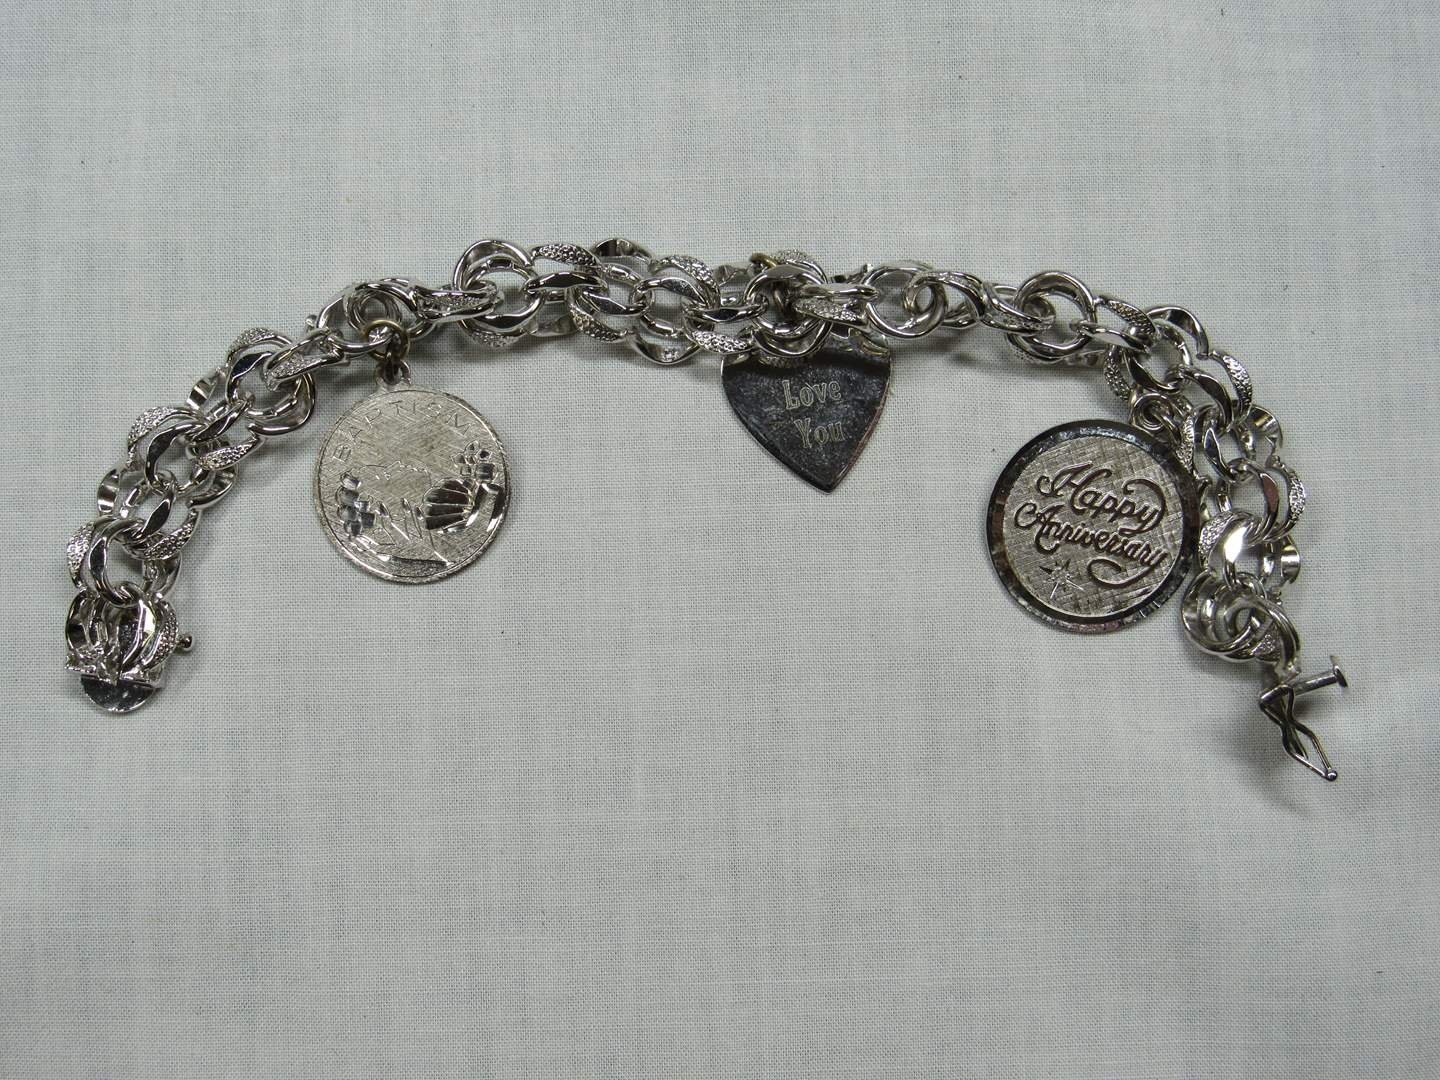 Lot # 205  High End Sterling Silver charm bracelet w/charms (main image)